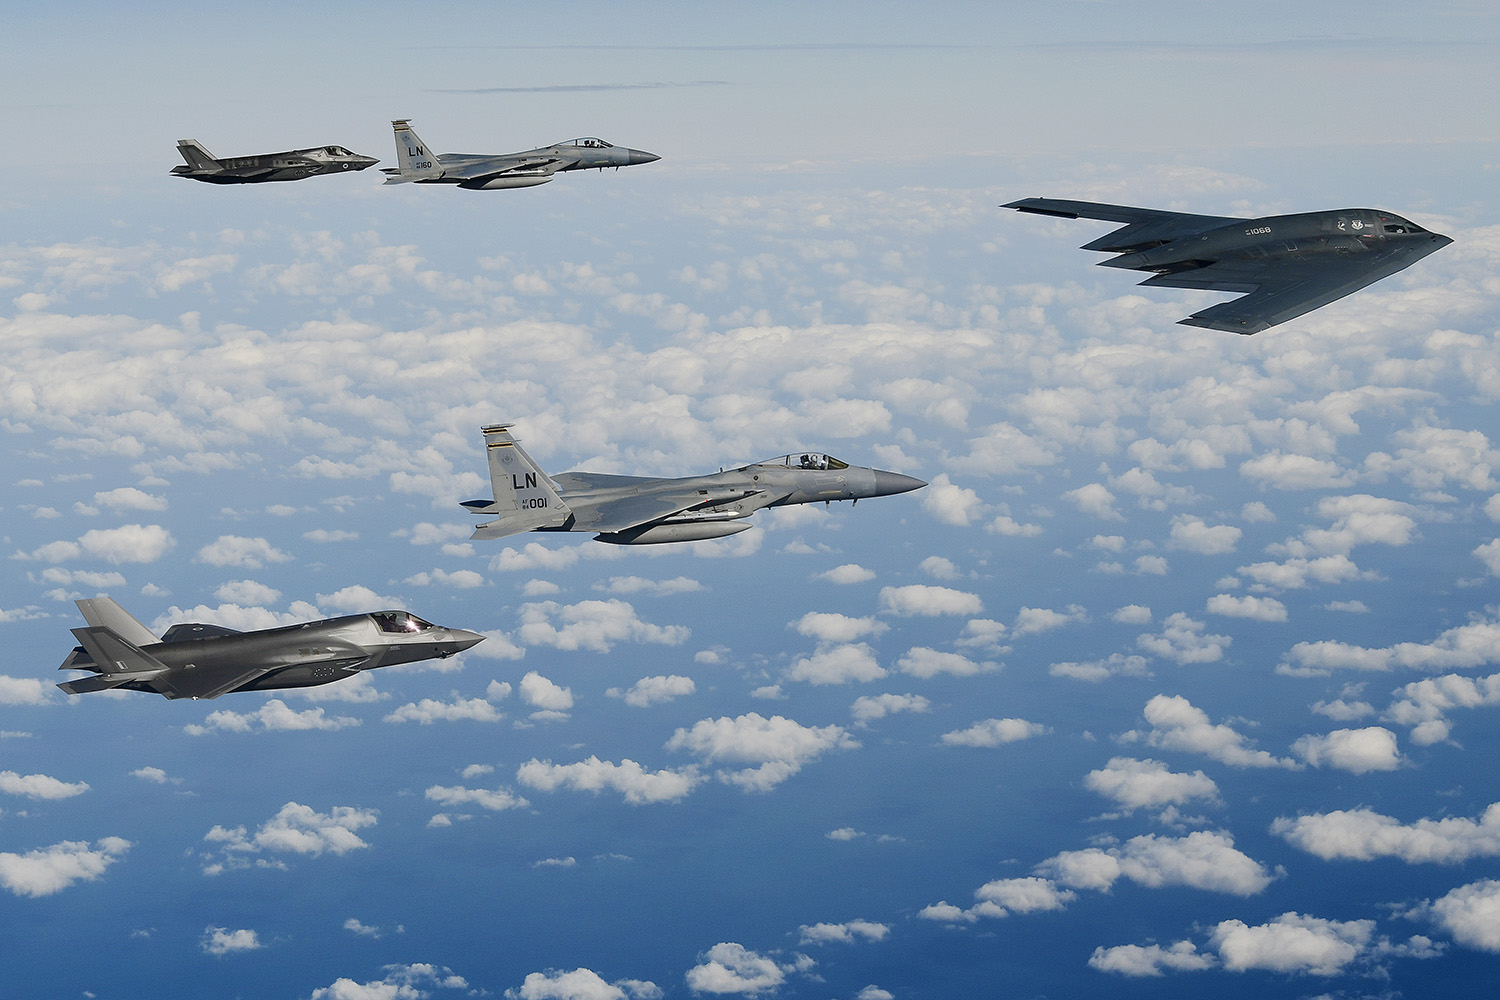 A B-2A Spirit bomber leads a delta formation consisting of two F-15C Eagles and two Royal Air Force F-35B Lightning IIs as they conduct aerial operations over the North Sea, Sept. 16, 2019. (Tech. Sgt. Matthew Plew/Air Force)